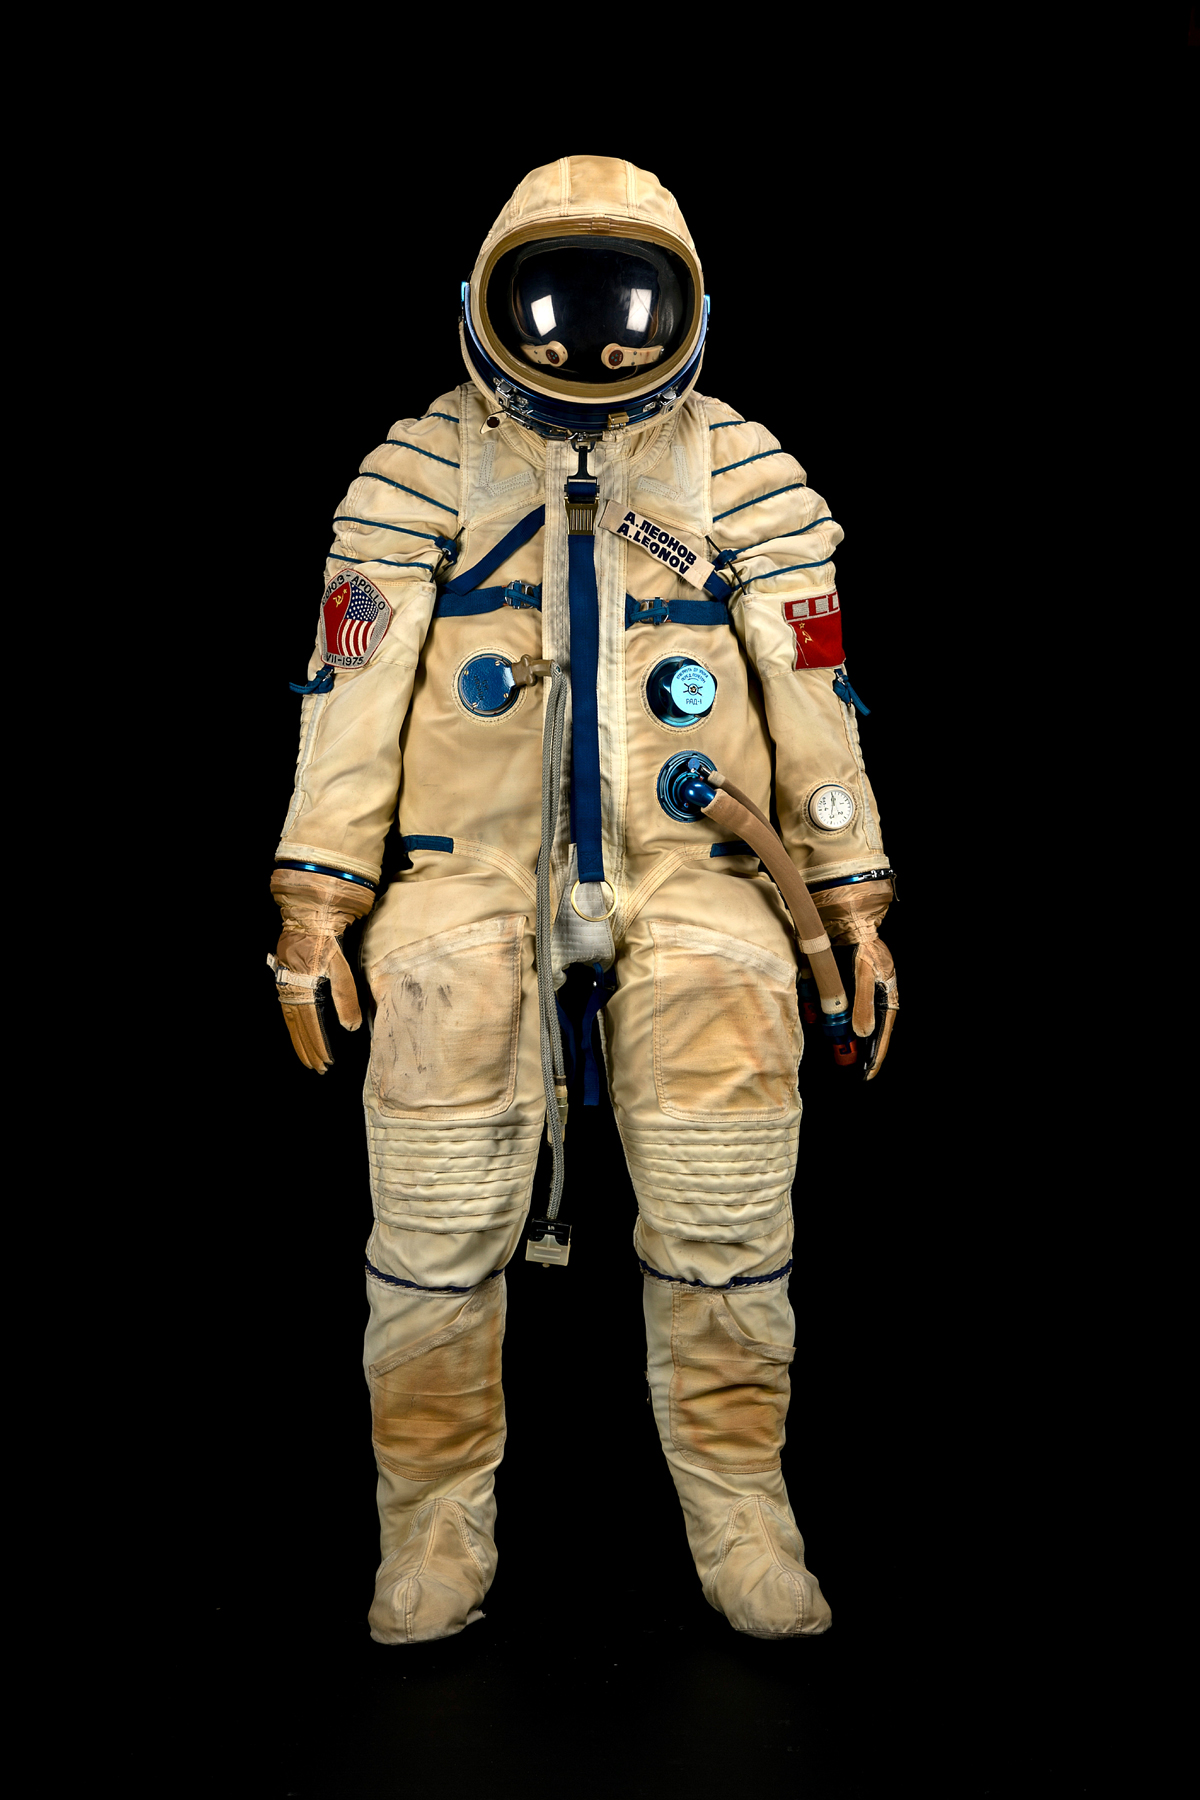 Space Souvenir Auction to Mark Birth of  U.S. Spaceflight